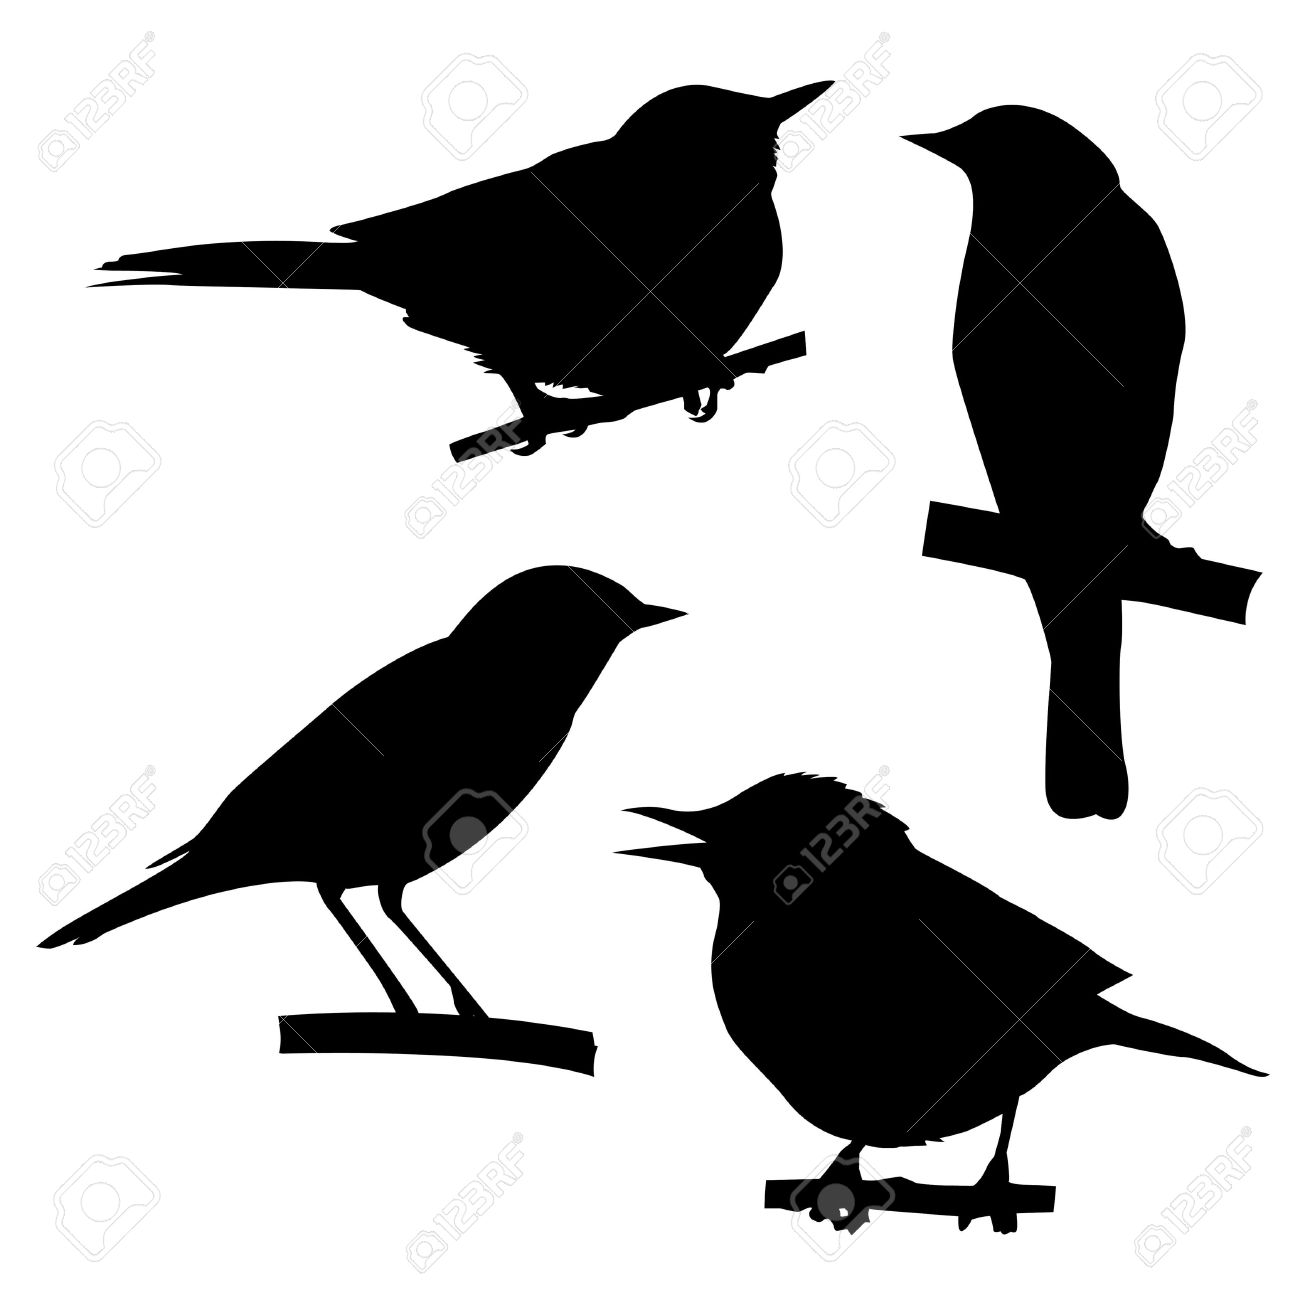 1300x1300 Silhouettes Of The Birds Sitting On Branch Tree Stock Photo